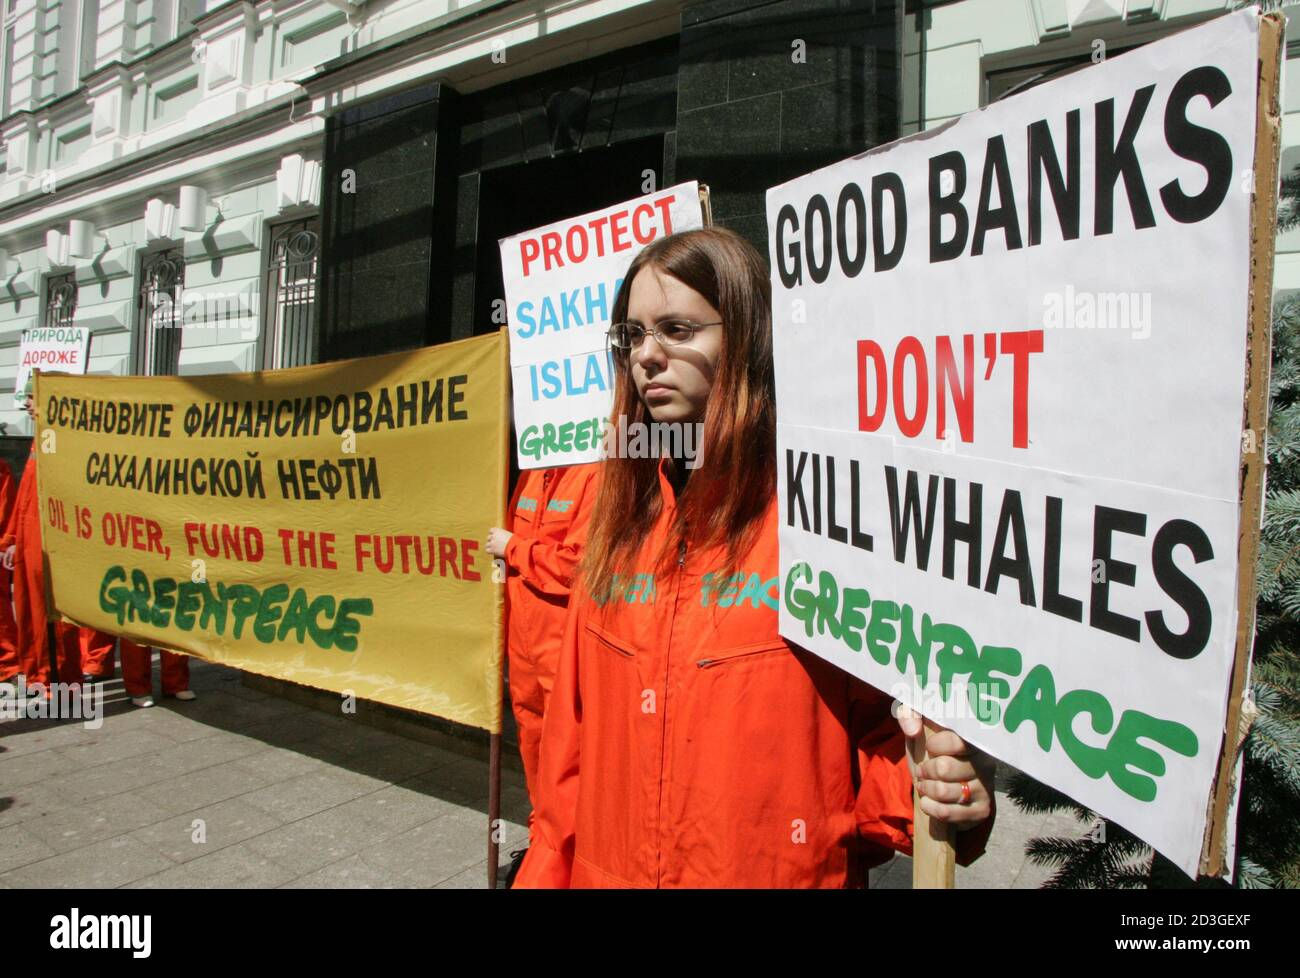 Greenpeace activists protest against Credit Swiss banks financing of the expansion of Shells liquefied natural gas plant on Russias Sakhalin island in front of the banks Moscow office.  Greenpeace activists protest against Credit Swiss bank's financing of the expansion of Shell's liquefied natural gas plant on Russia's Sakhalin island in front of the bank's Moscow office, June 27, 2005. Intentions for the expansion project were announced earlier this month by oil major Royal Dutch/Shell. REUTERS/Sergei Karpukhin Stock Photo